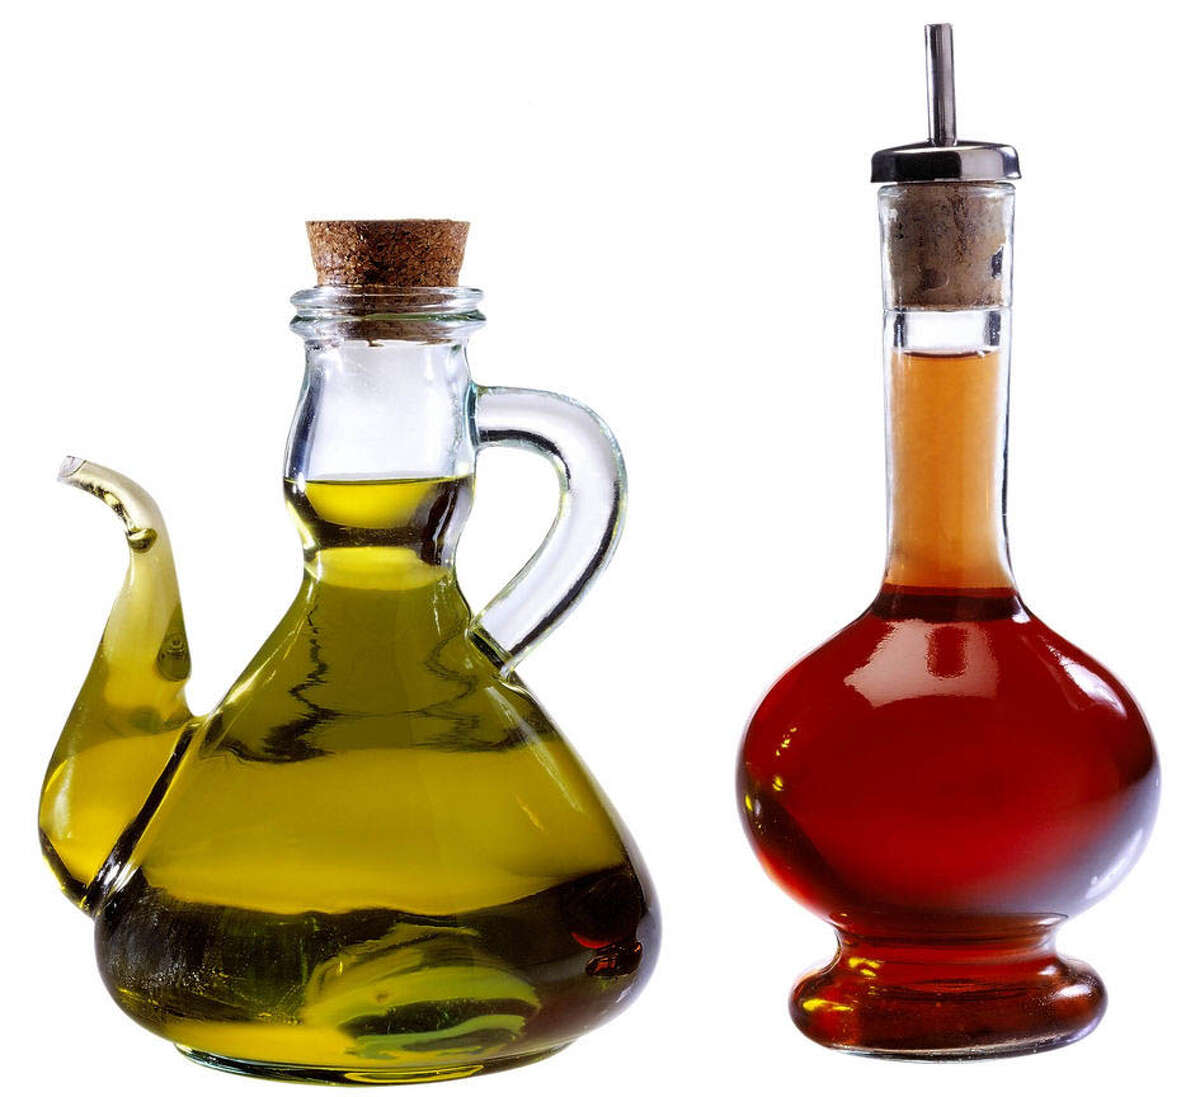 Does olive oil prevent heart disease? Short answer: Yes The health benefits of olive oil come from the presence of polyphenols, antioxidants that reduce the risk of heart diseases and cancers. But to get these healthy compounds, consumers should buy good-quality, fresh